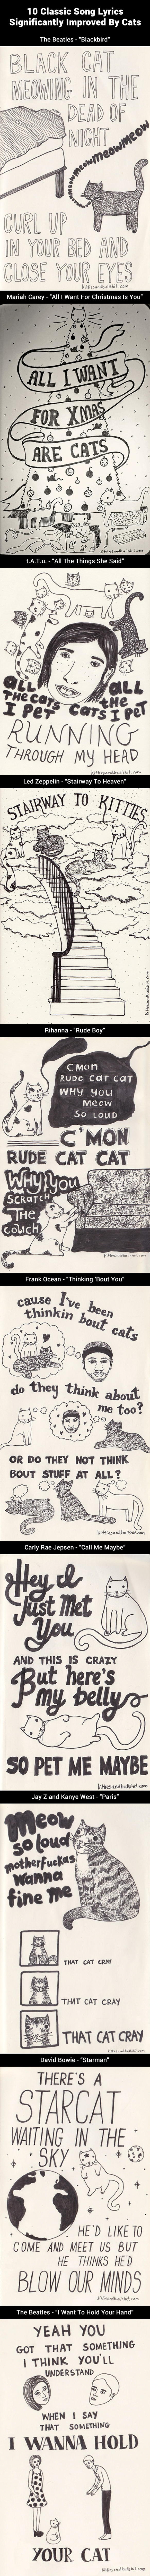 ten classic song lyrics significantly improved by cats